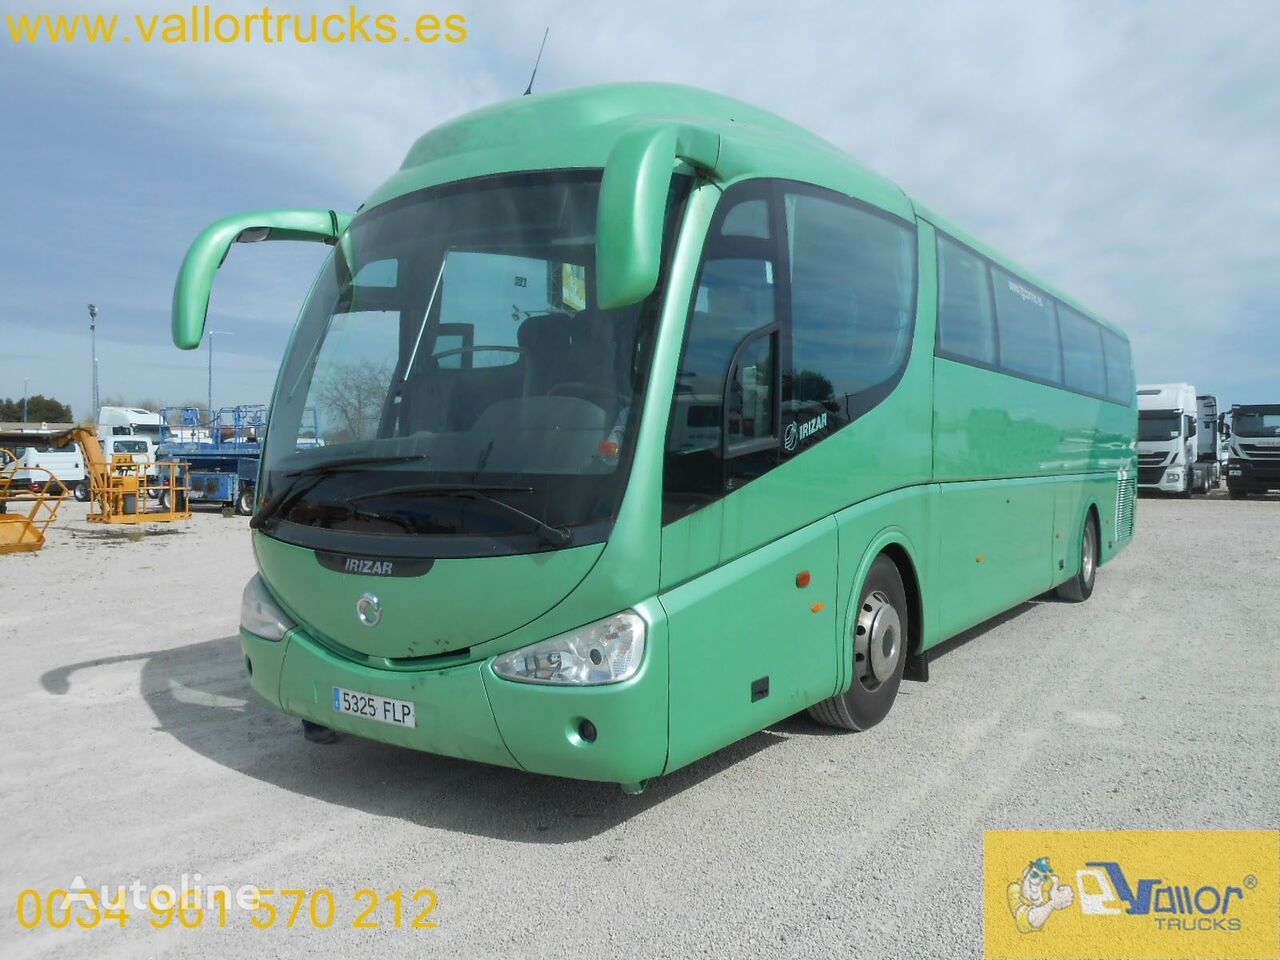 IRIZAR PB coach bus